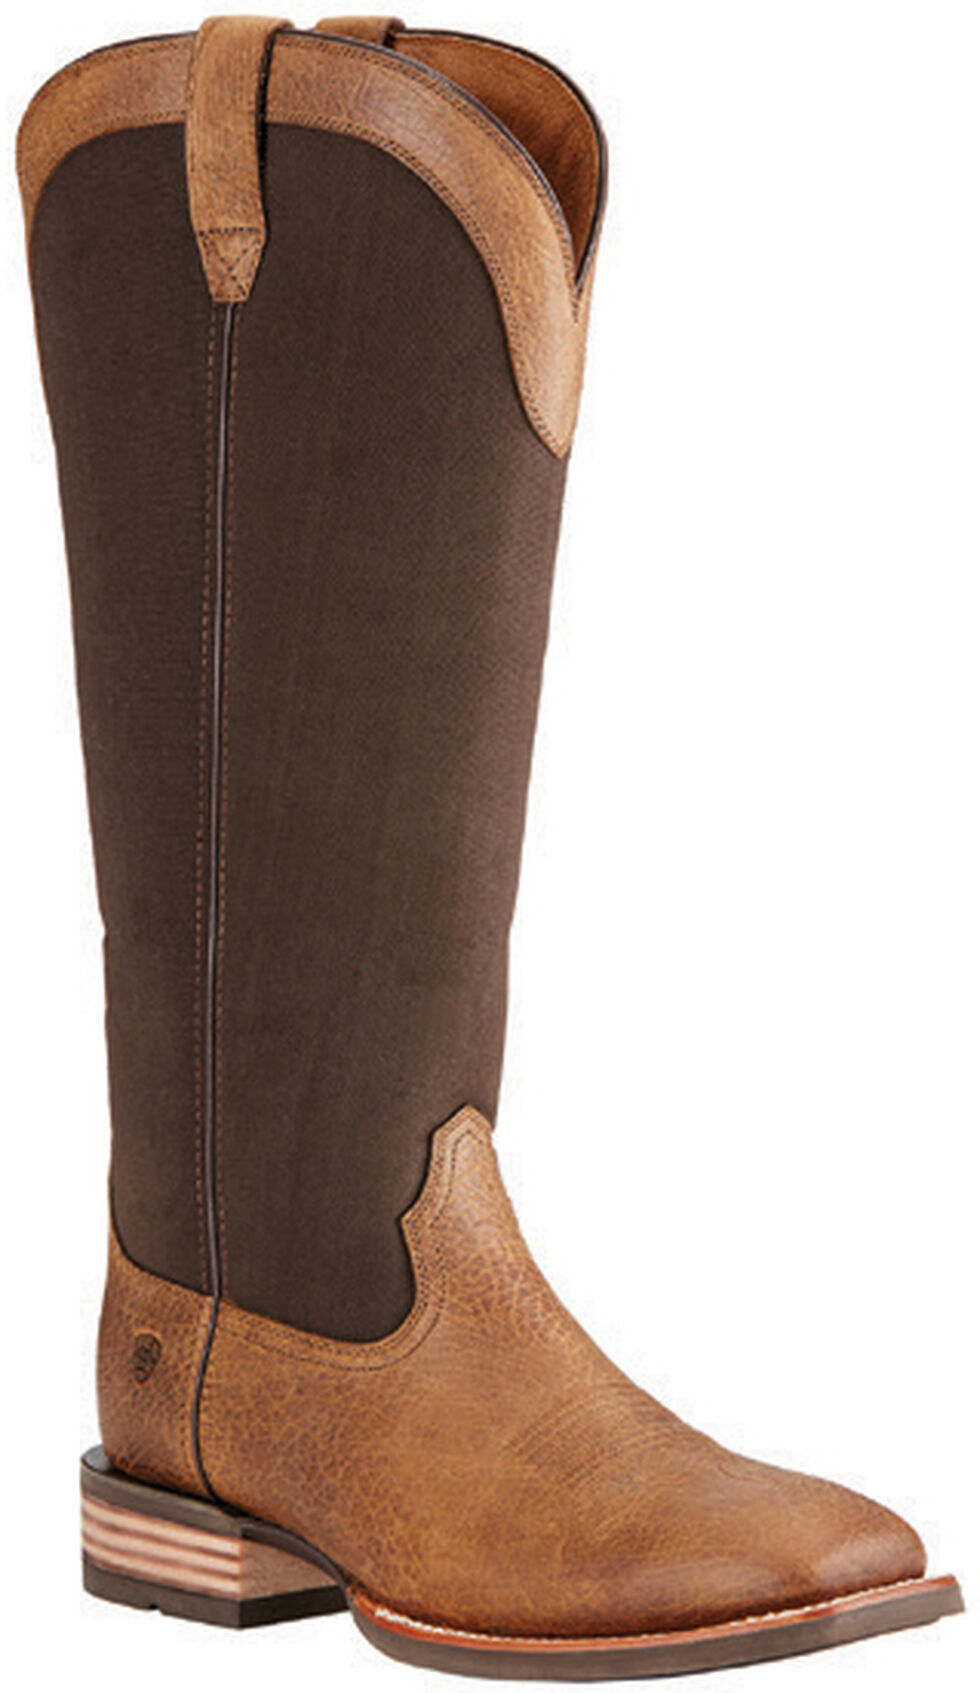 Ariat Quickdraw Snake Bite Western Work Boots - Square Toe, , hi-res